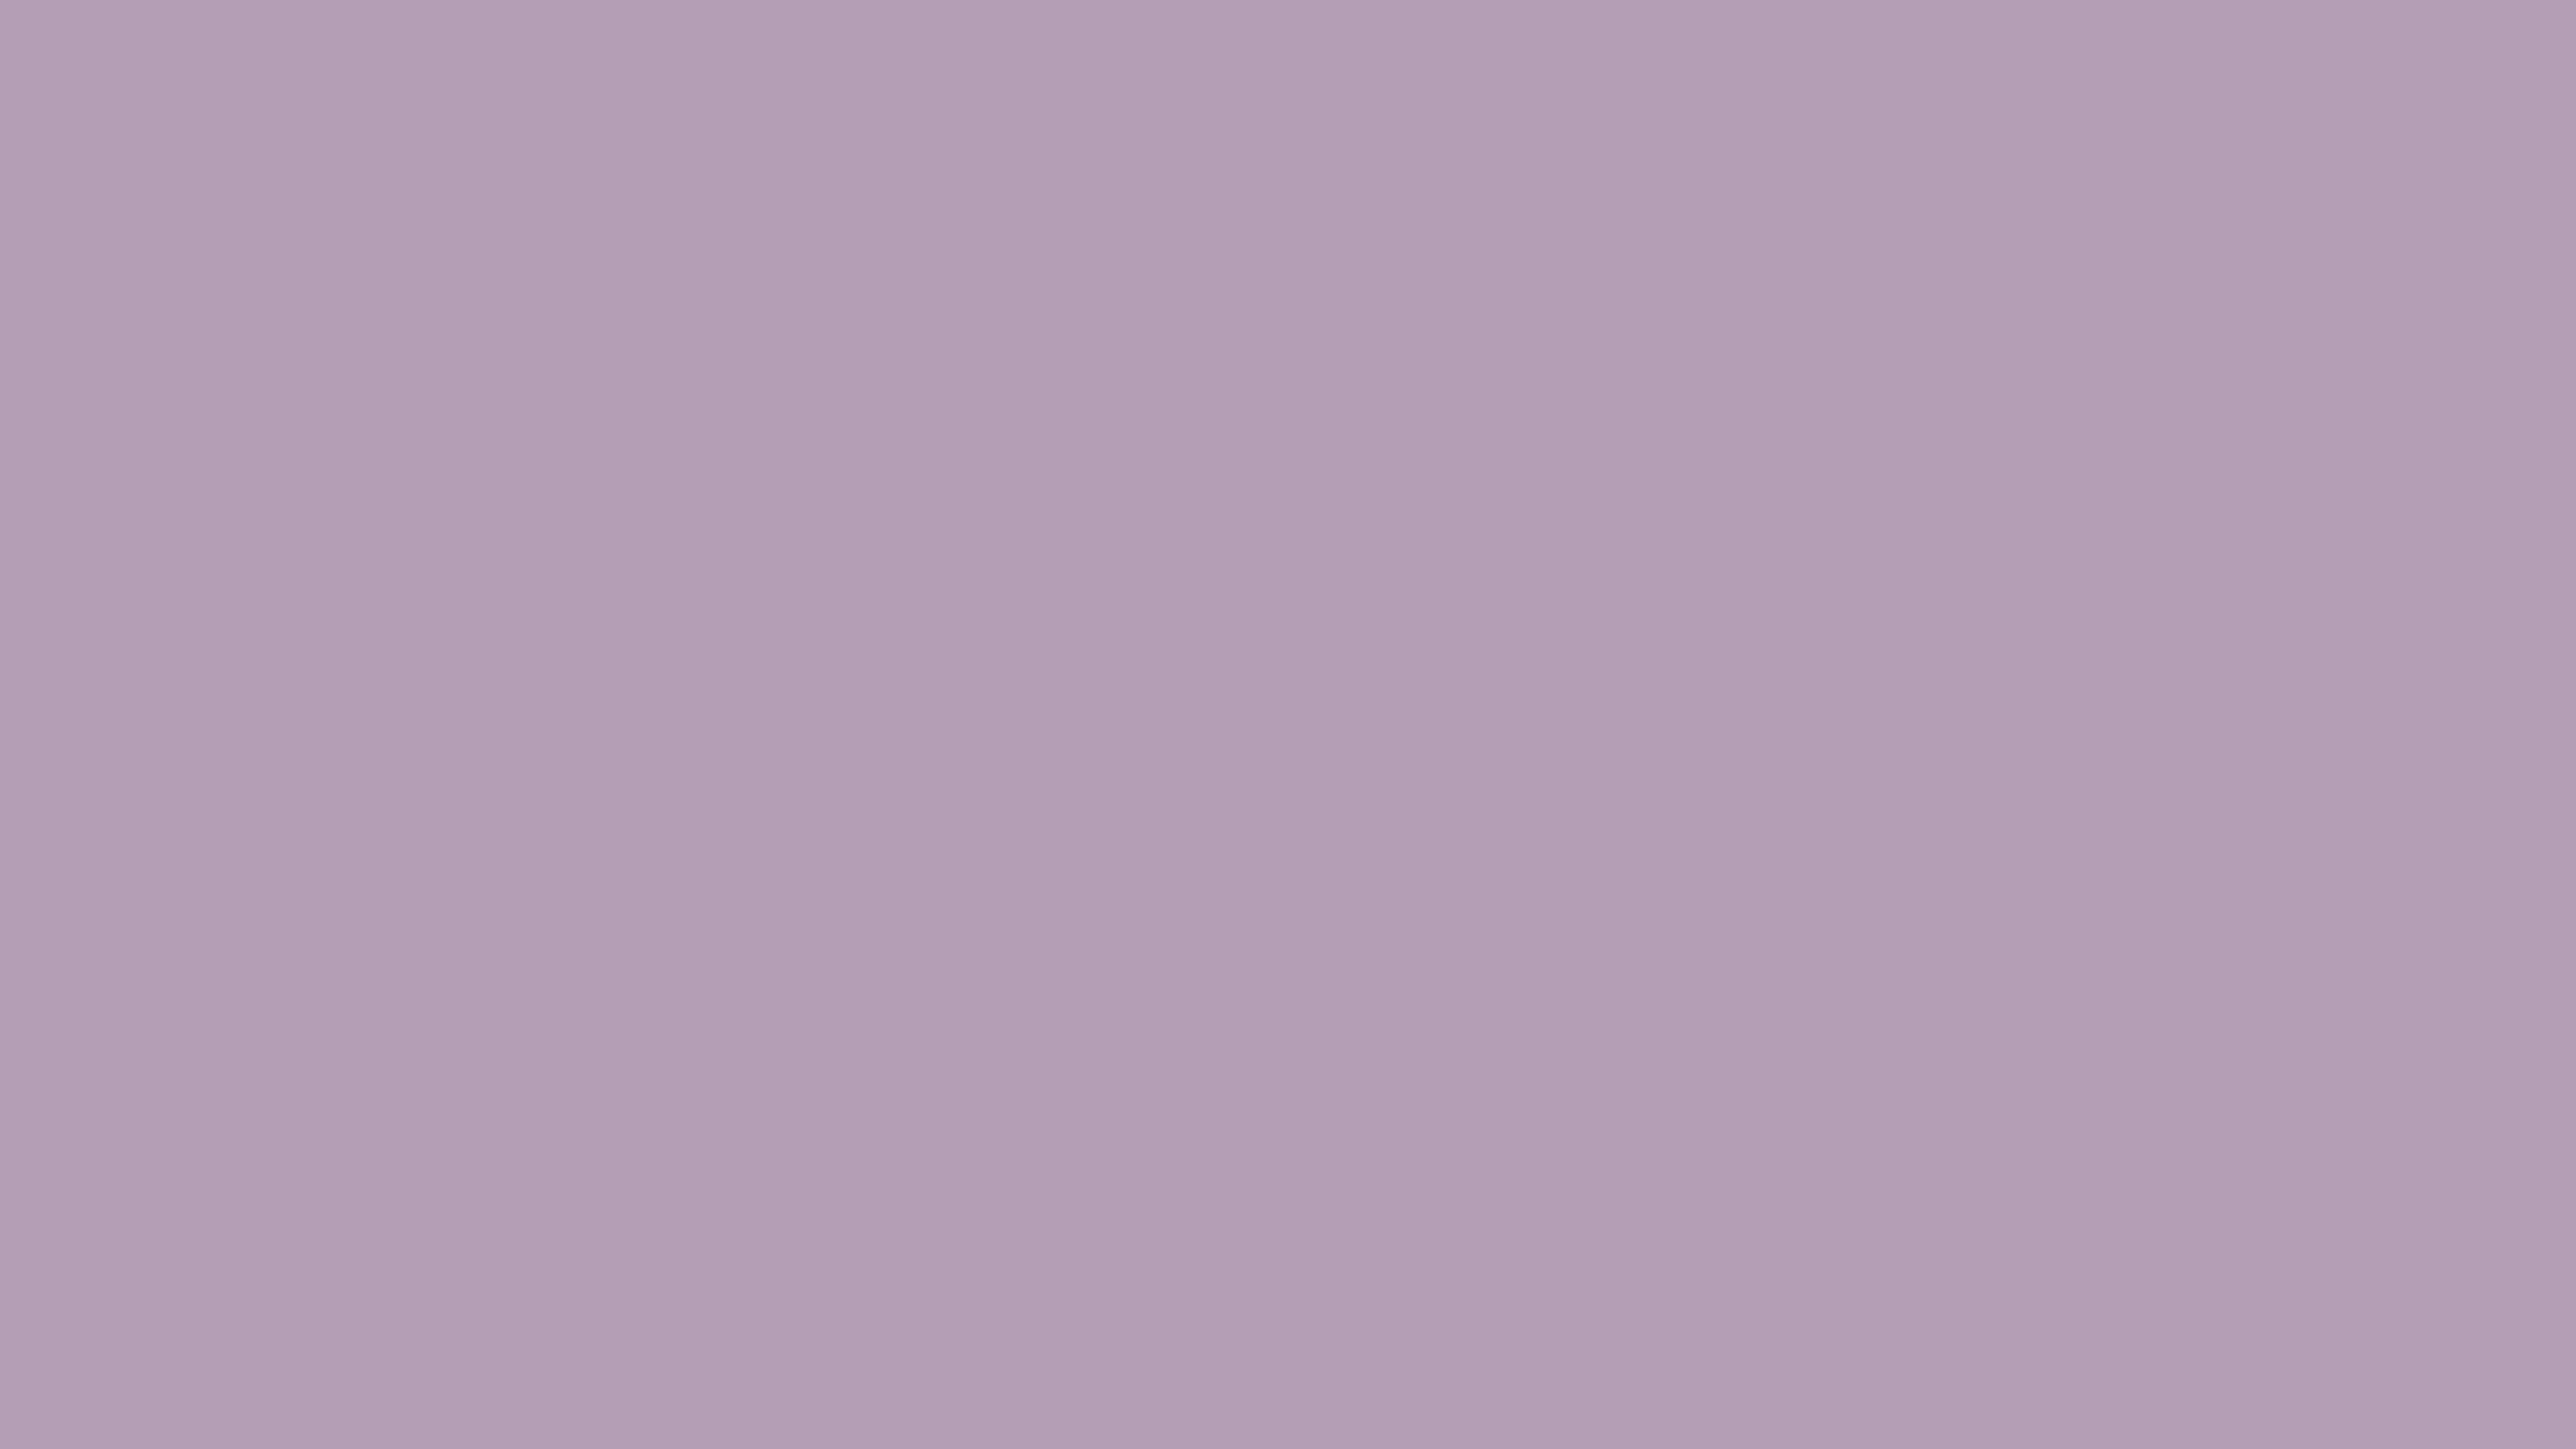 3840x2160 Pastel Purple Solid Color Background